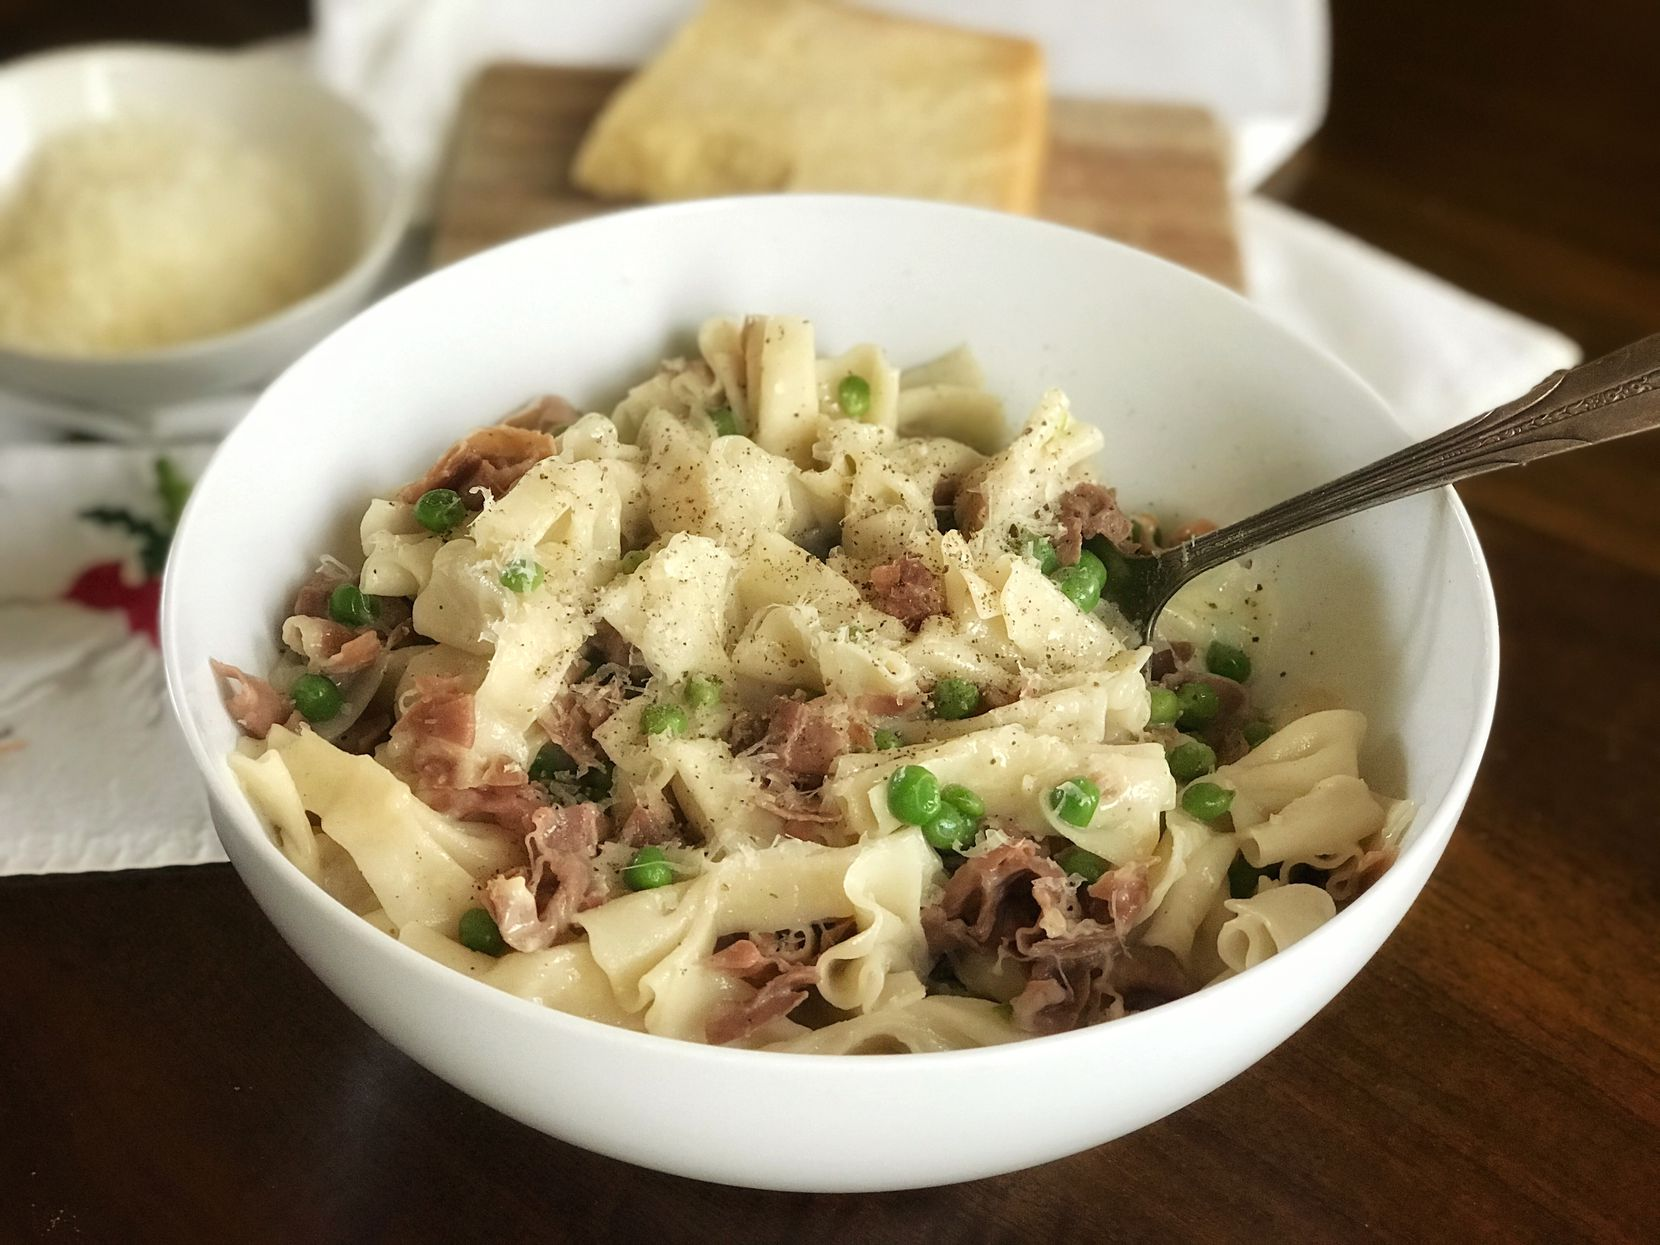 Farfalle pasta with ham and peas